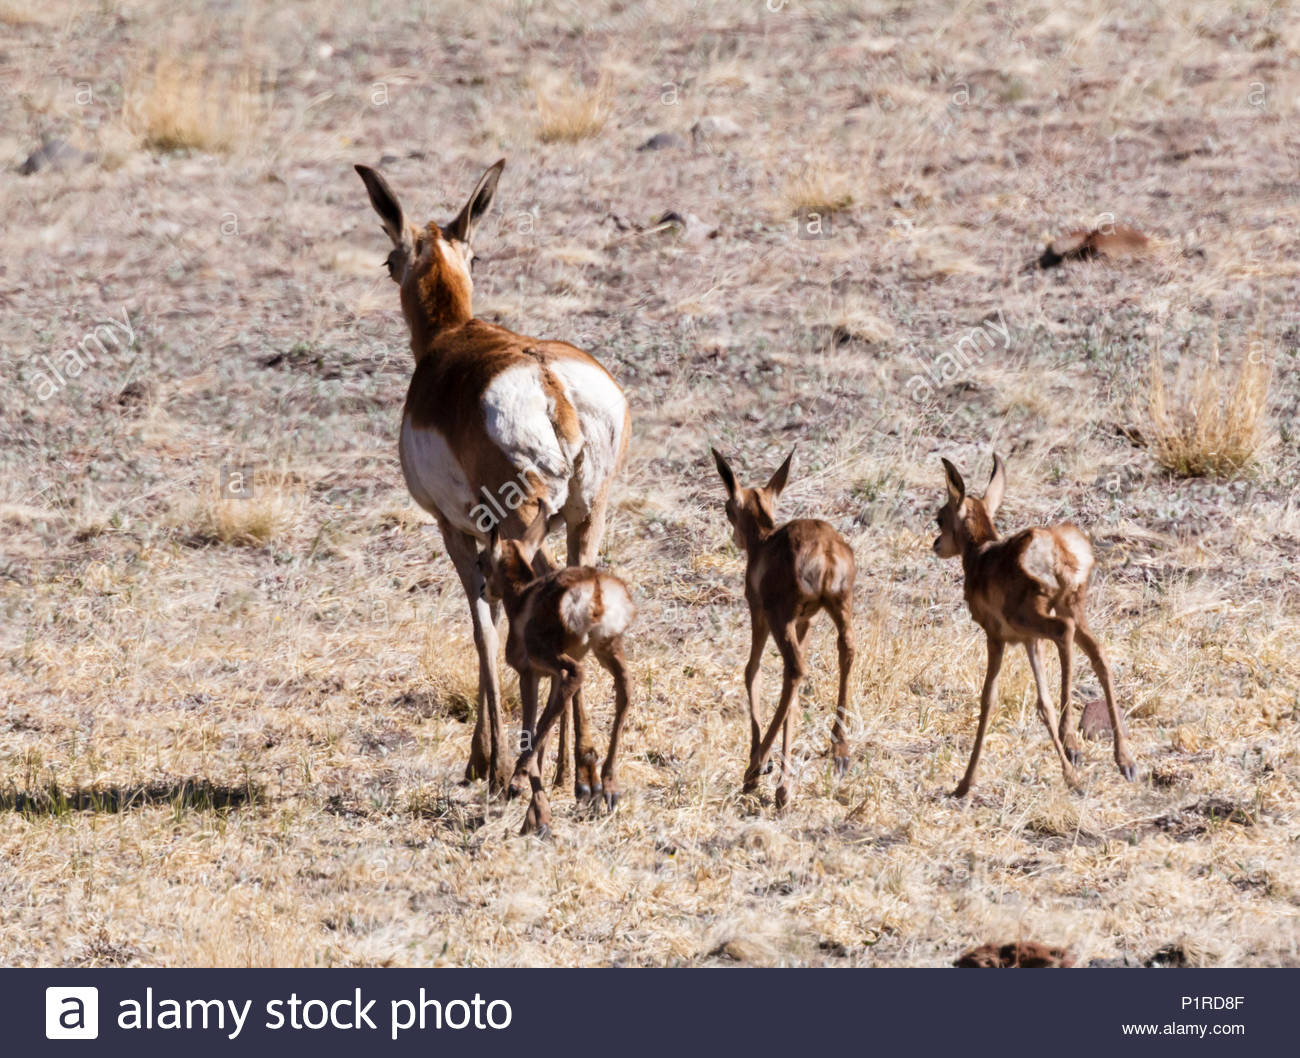 pronghorn-antilocapra-americana-doe-with-triplet-fawns-walking-arizona-usa-P1RD8F.jpg